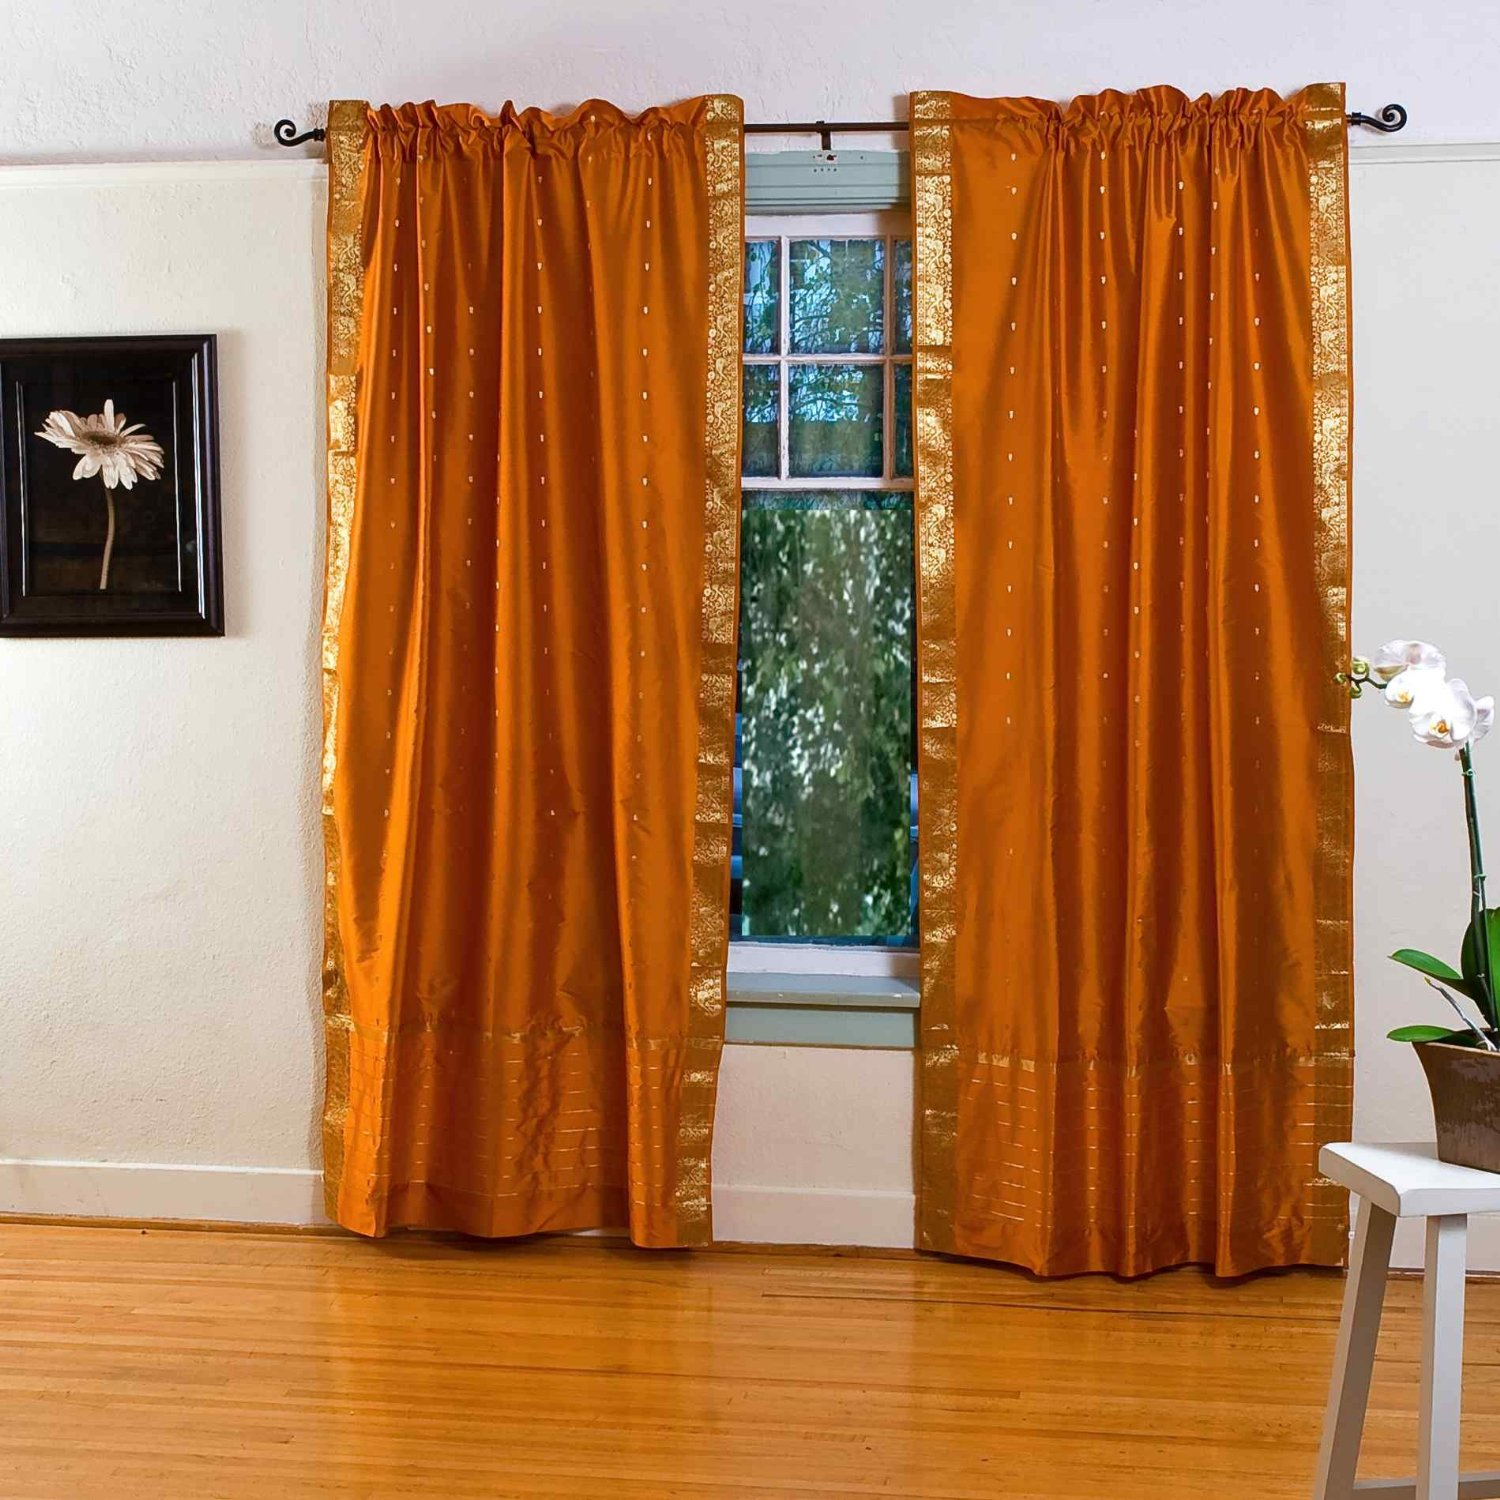 Artistic Curtains With Orange Walls Of Full Size Of Modern Kitchen:decorating Kitchen Decorations